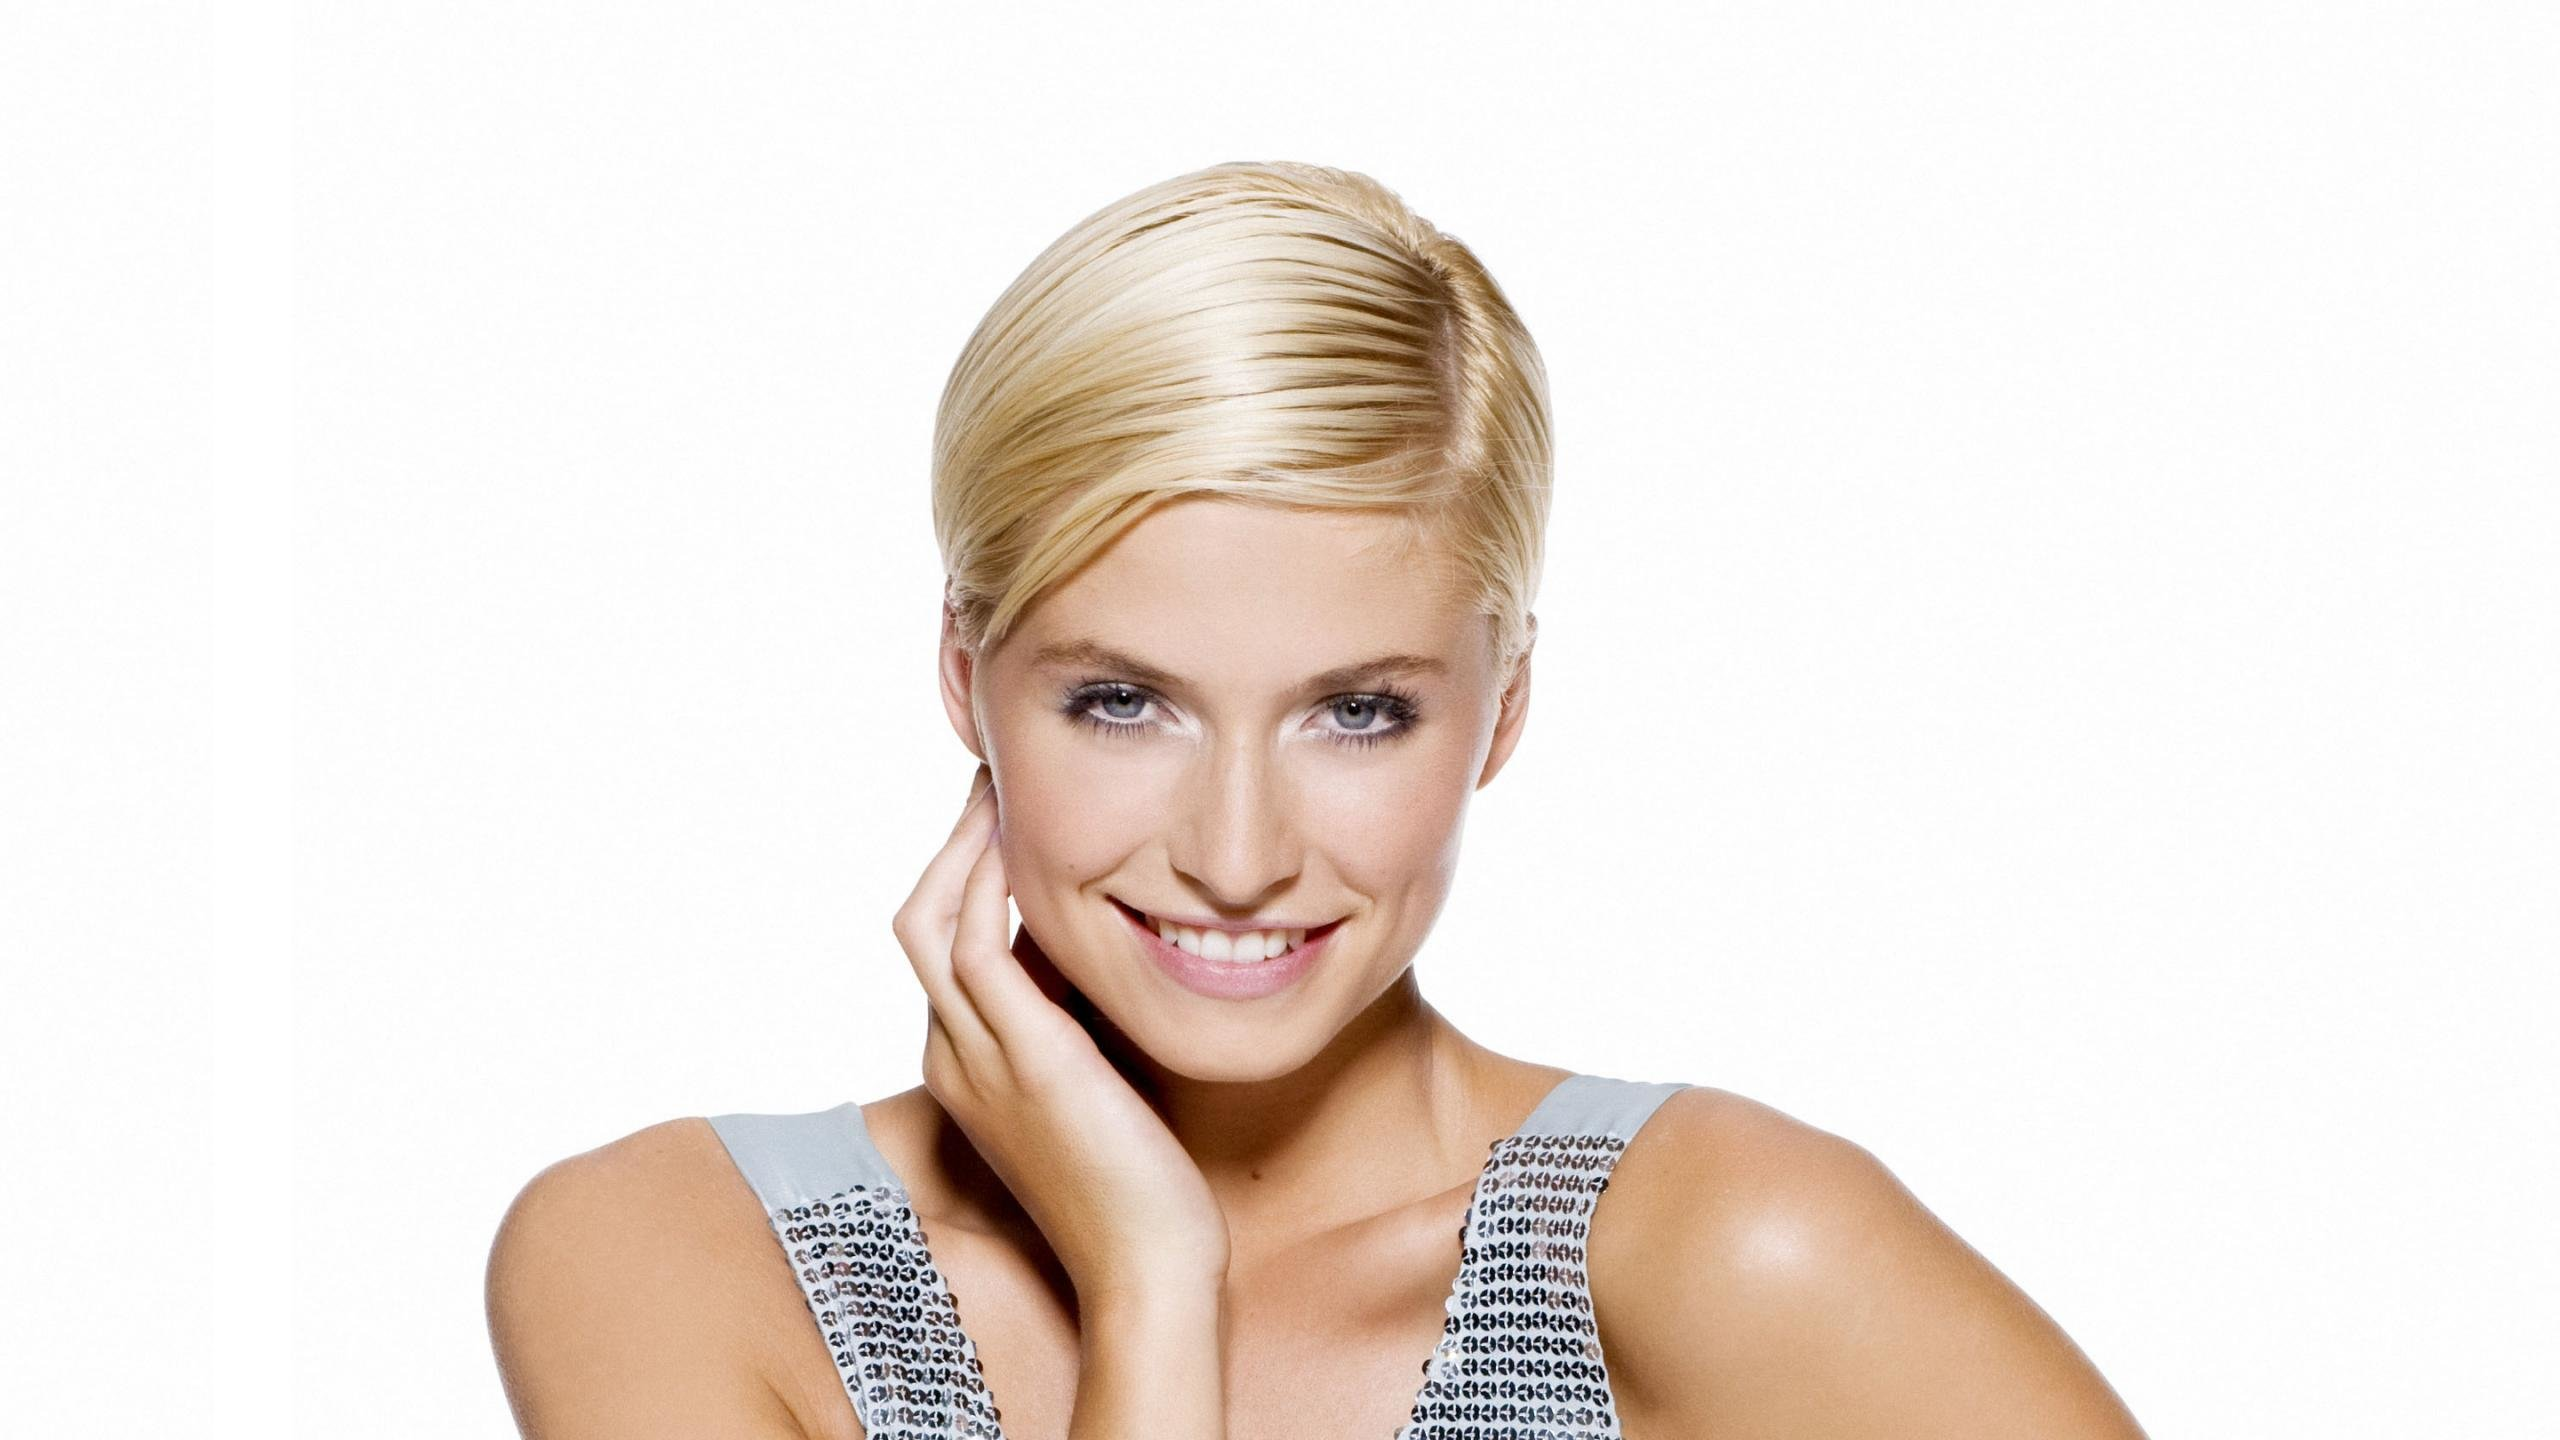 Awesome Lena Gercke free background ID:465967 for hd 2560x1440 computer